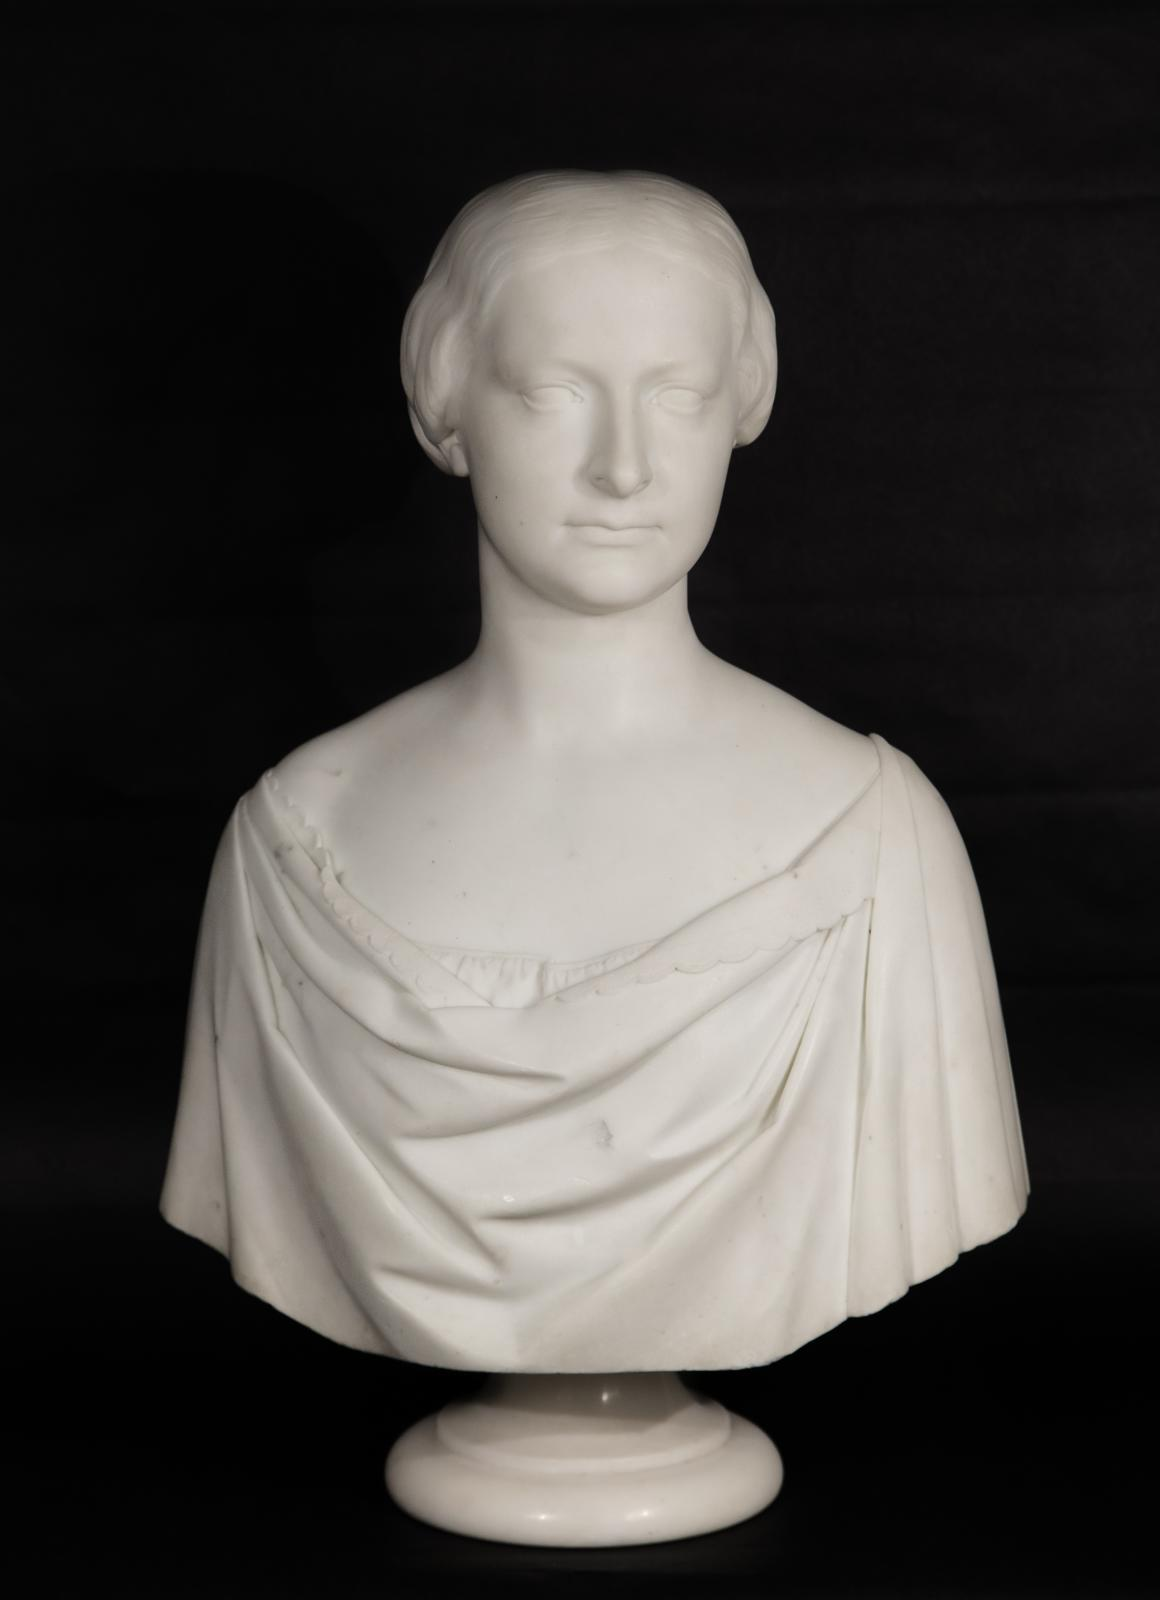 A bust of a woman in white marble